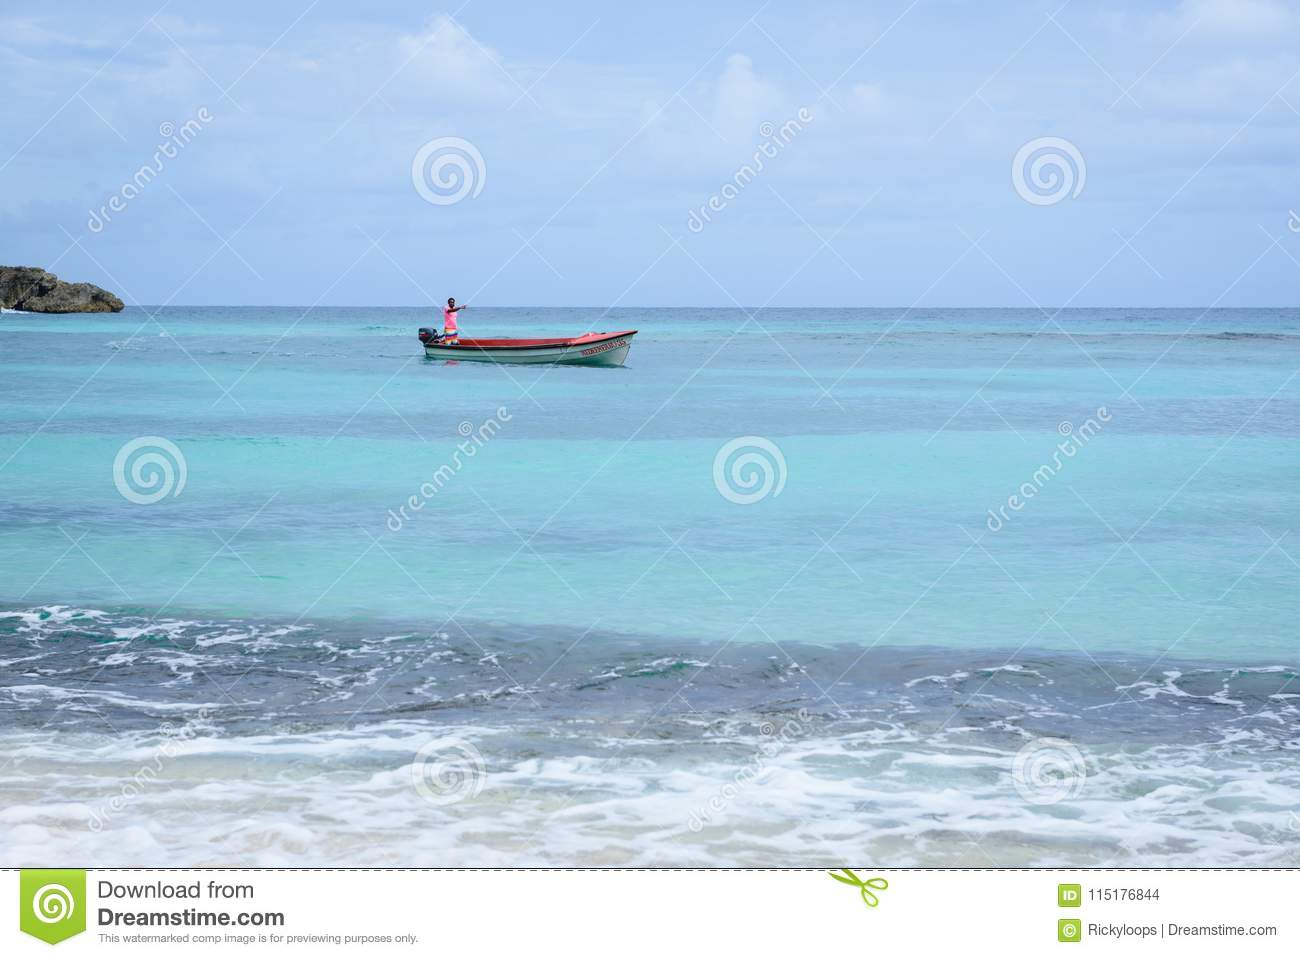 Local fisherman in his boat off the shore of Winifred beach Zion Hill, Portland, Jamaica, November 22, 2017